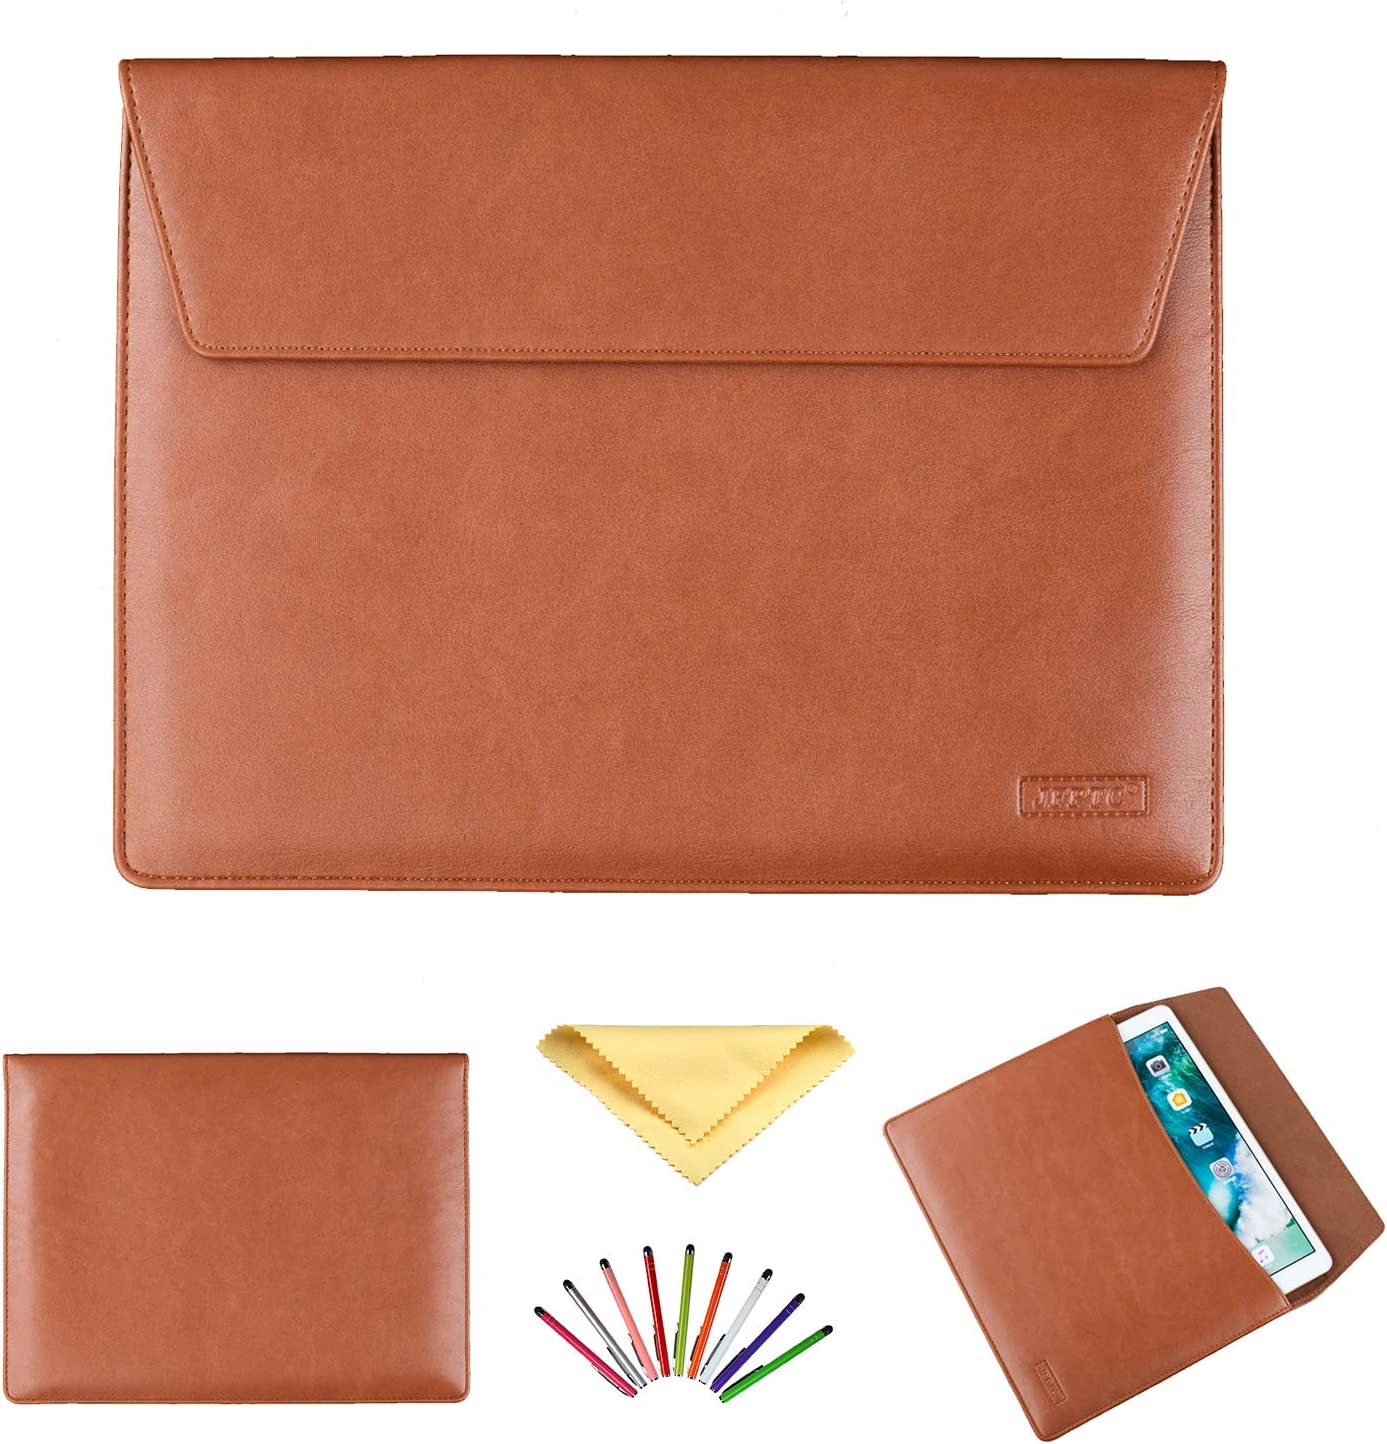 JIANGNIUS Tablet Case Universal Lichi Texture Leather Case with Holder for 8.0 inch Tablet PC S-WMC-1731S, S-WMC-1724S, S-WMC-1723B,S-WMC-1723W, S-WMC-1677B, S-WMC-1674W, S-WMC-1668, S-WMC-1638S,S-WM